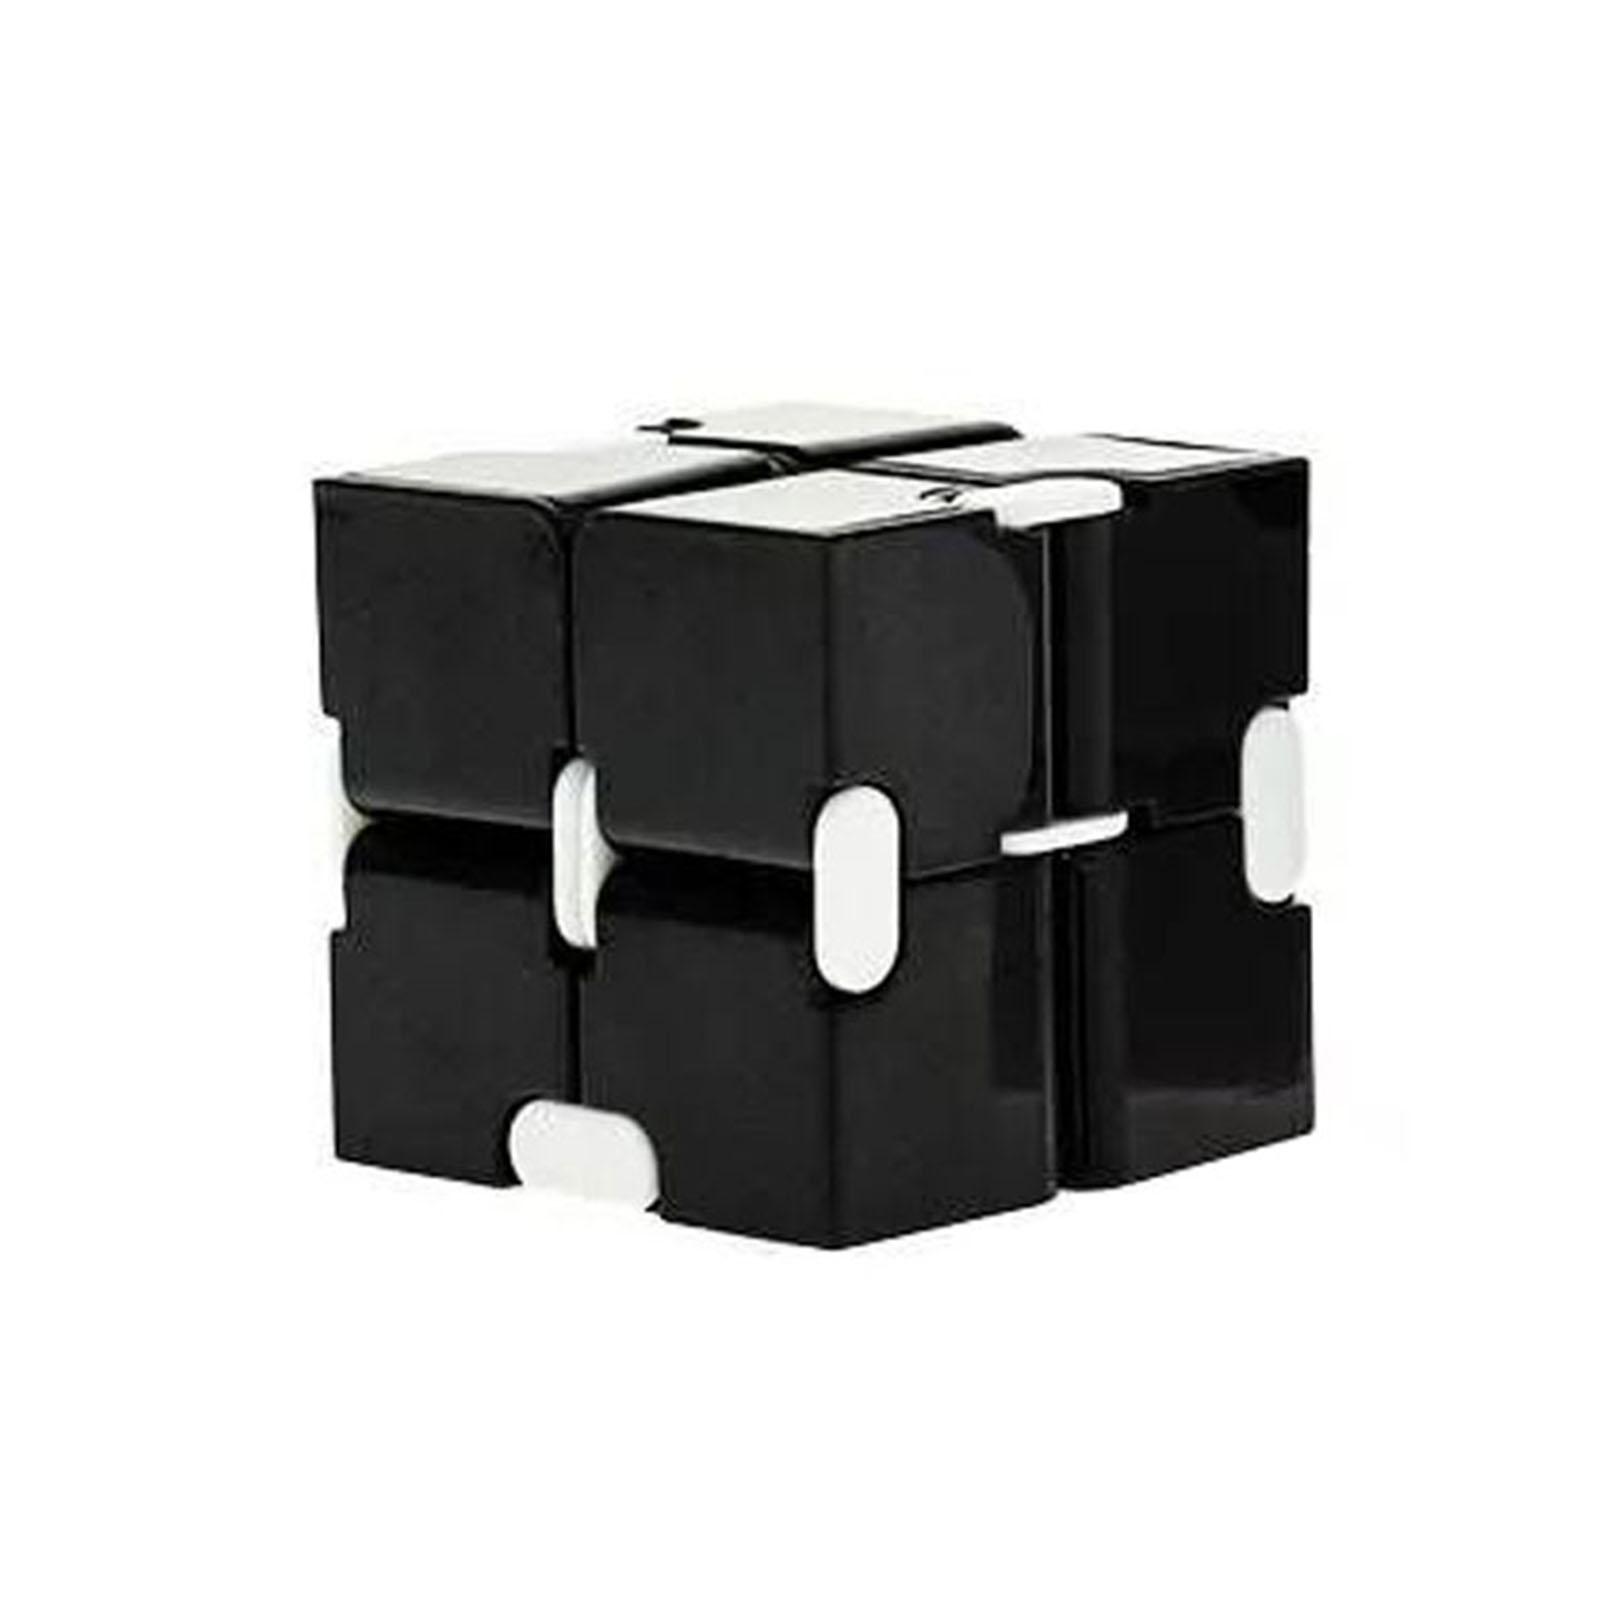 New Magic Cube Puzzle Cube Durable Exquisite Decompression Anti-stress Professional Educational Toys For Children Adults 8